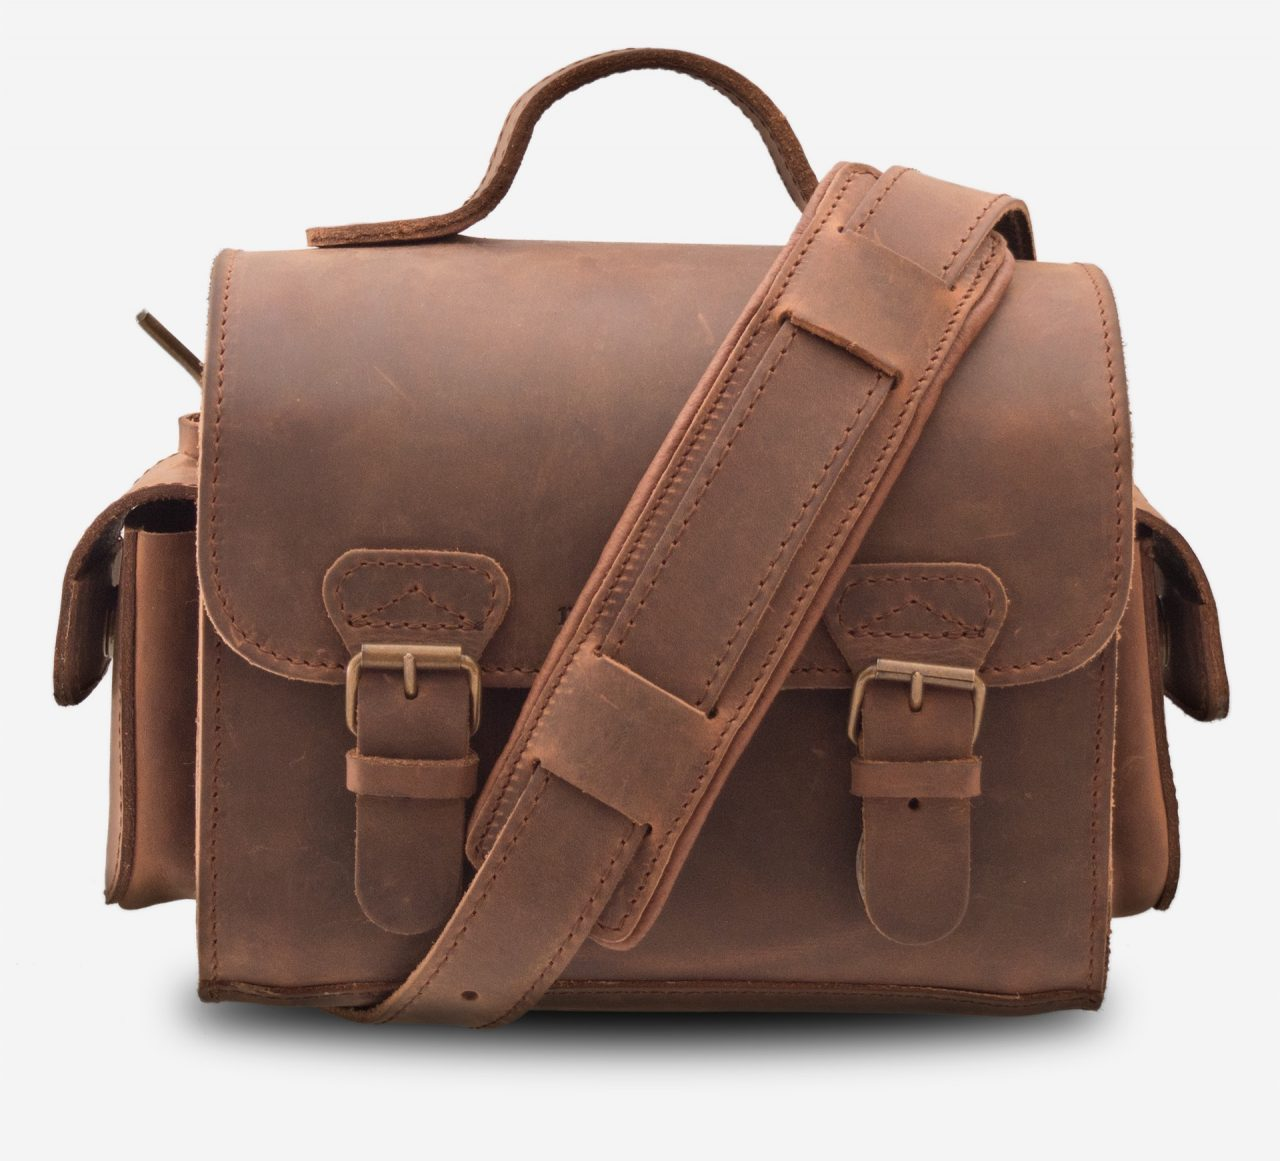 Front view of brown leather camera bag with shoulder strap 733104.